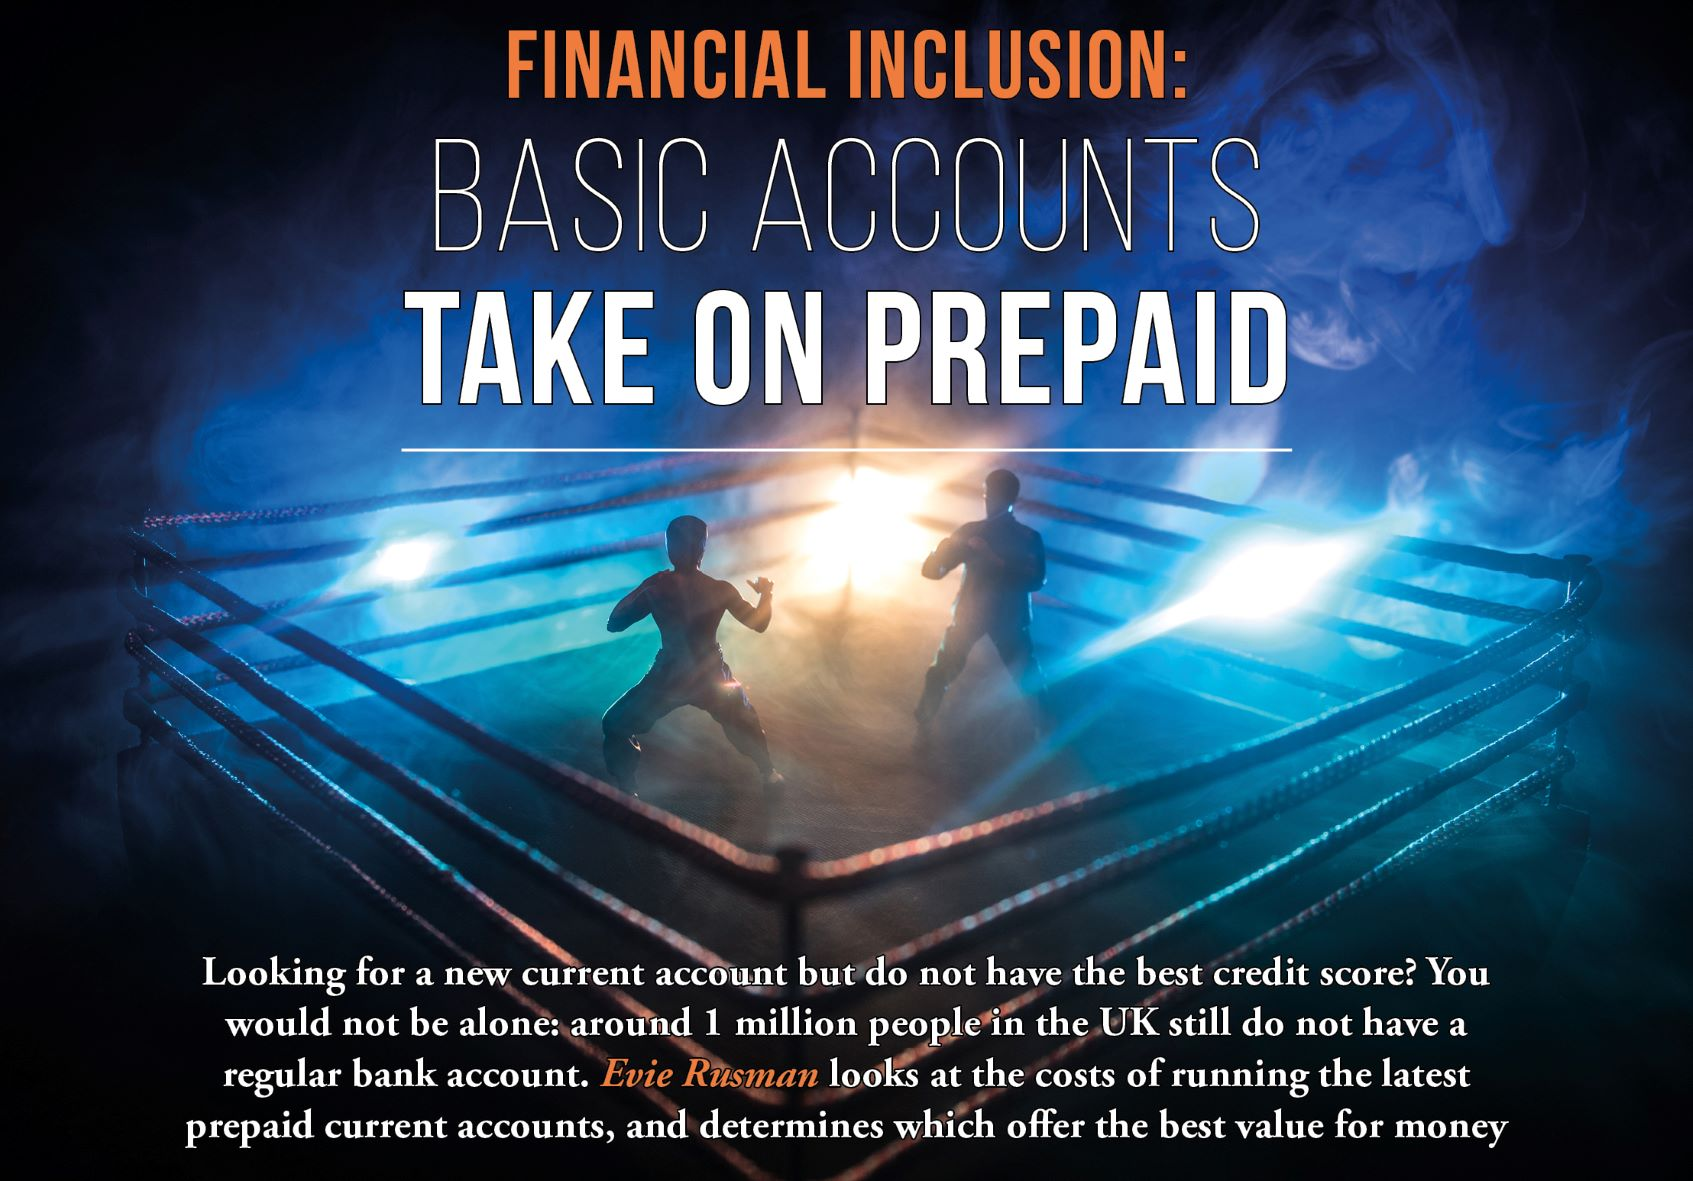 Sample subscriber content from Cards International: Basic Accounts take on Prepaid